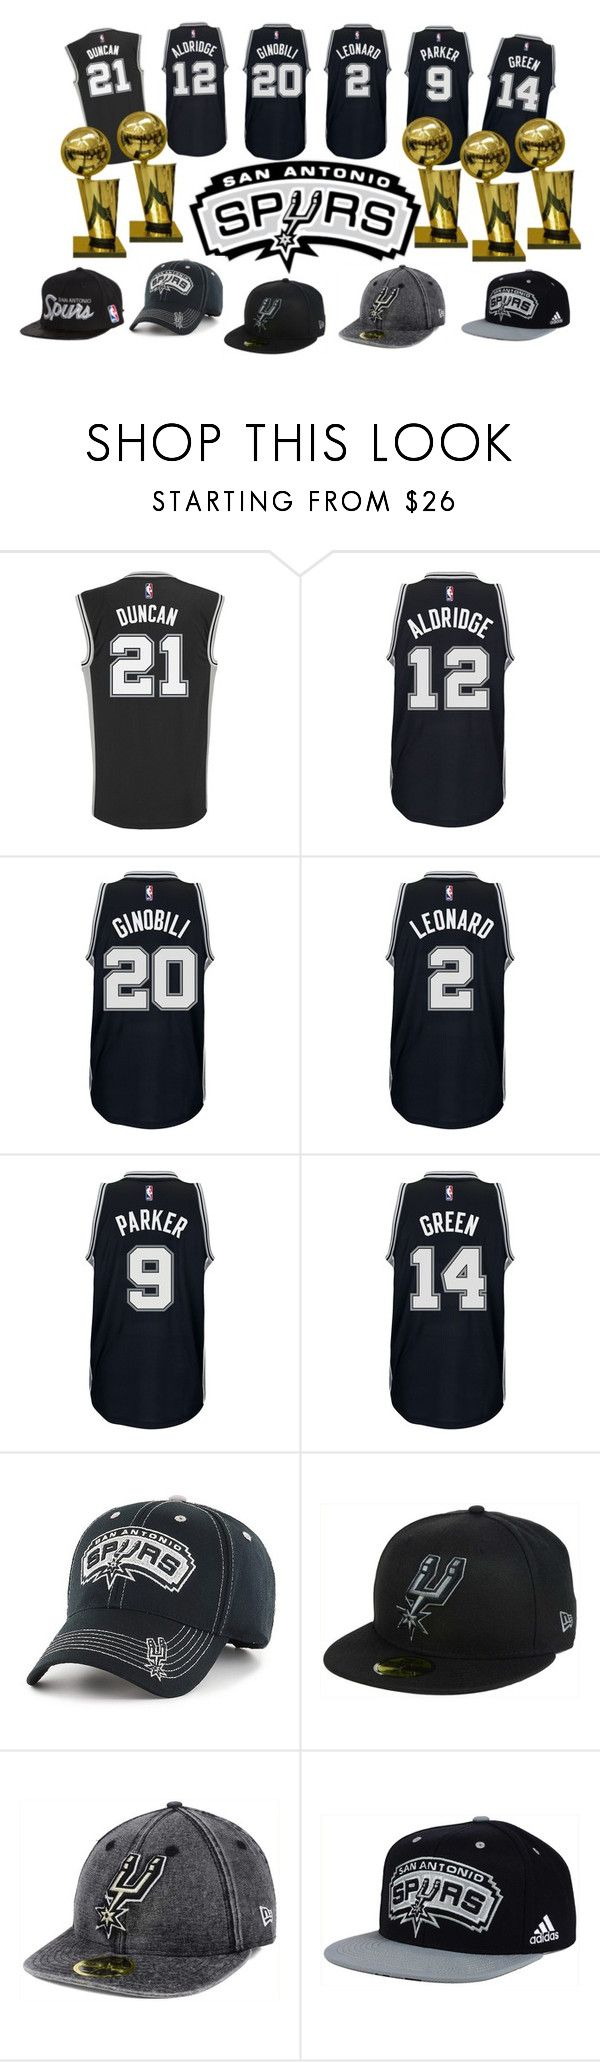 """San Antonio Spurs Basketball"" by fivefoot1designs ❤ liked on Polyvore featuring adidas, JUST DON, New Era, SpursNation, GOSpursGO and sanantoniospurs"